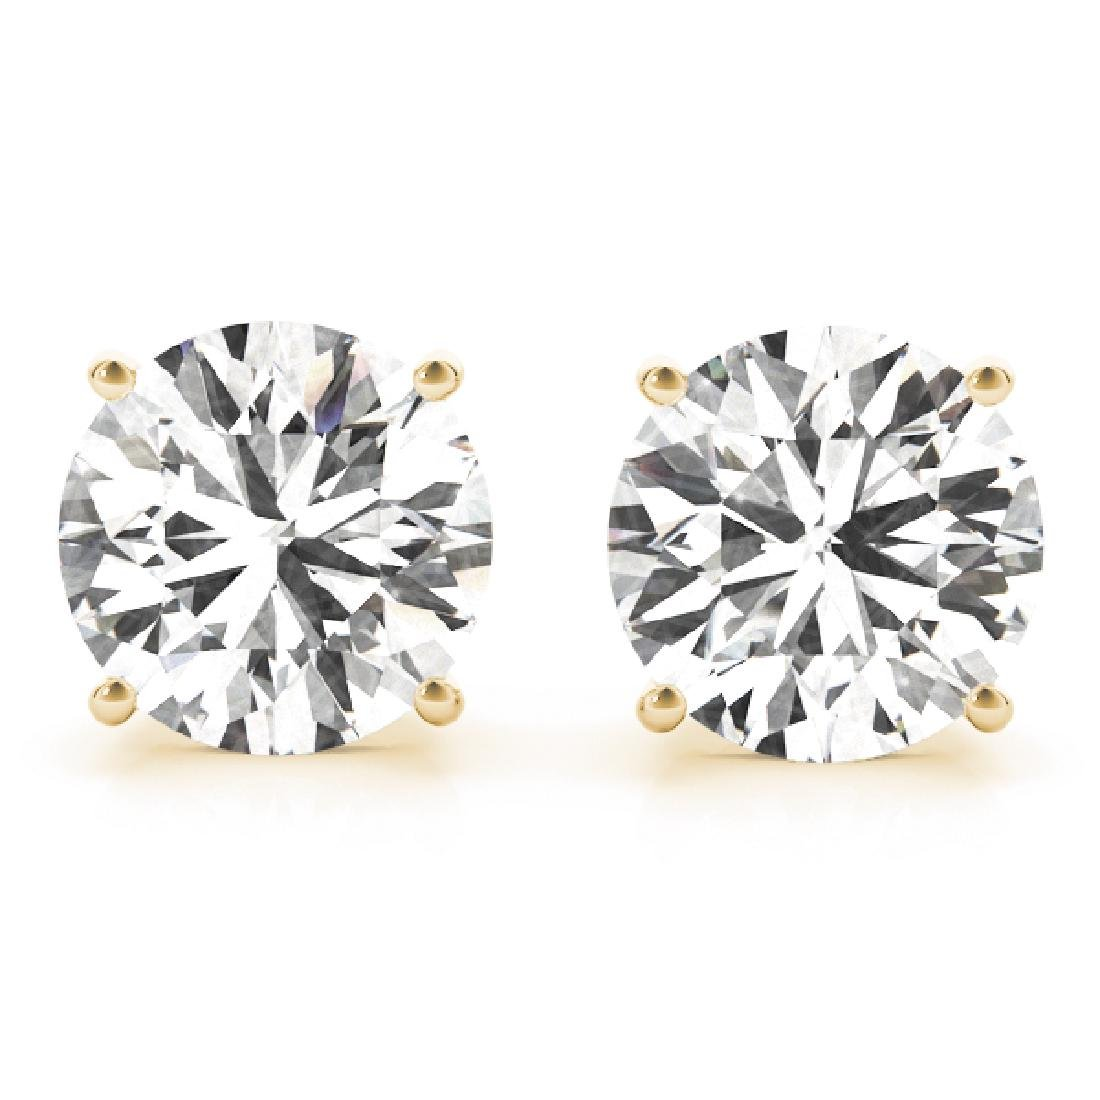 CERTIFIED 0.63 CTW ROUND J/I2 DIAMOND SOLITAIRE EARRING